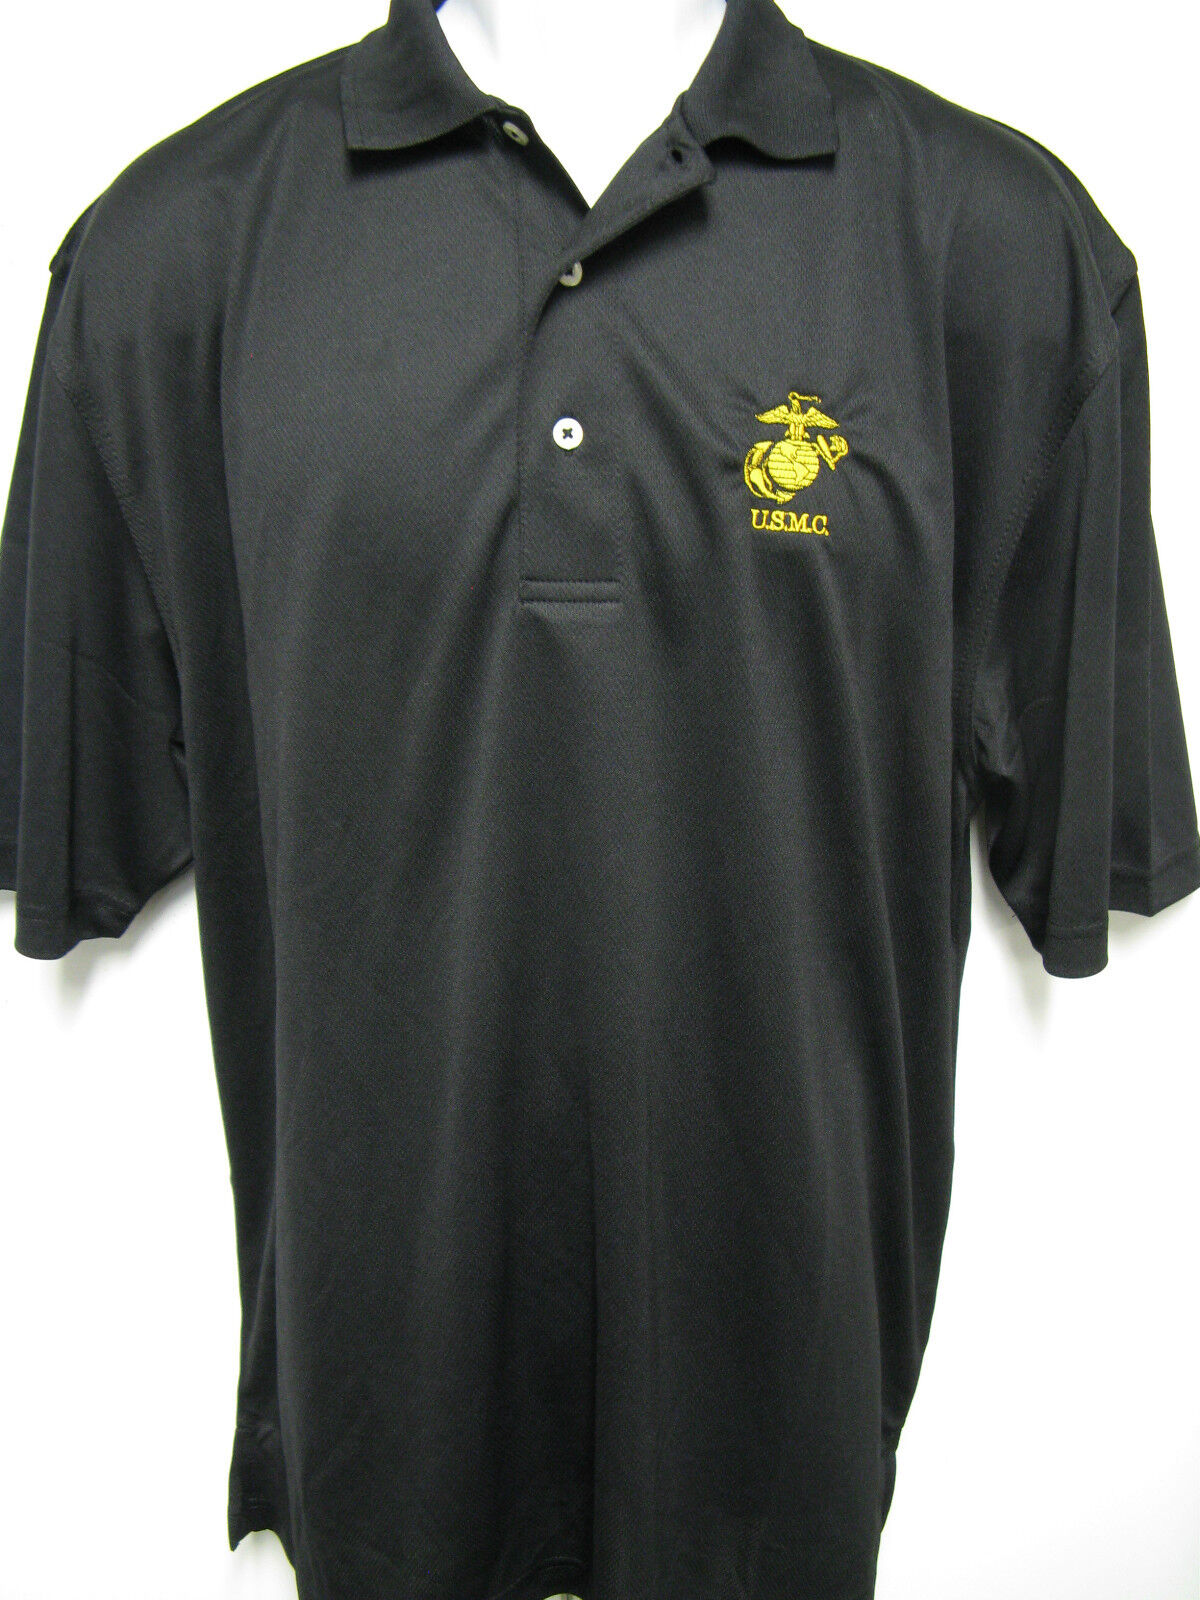 USMC DRI-FIT EMBROIDERED POLO T-SHIRT  gold EMBROIDERY  NEW